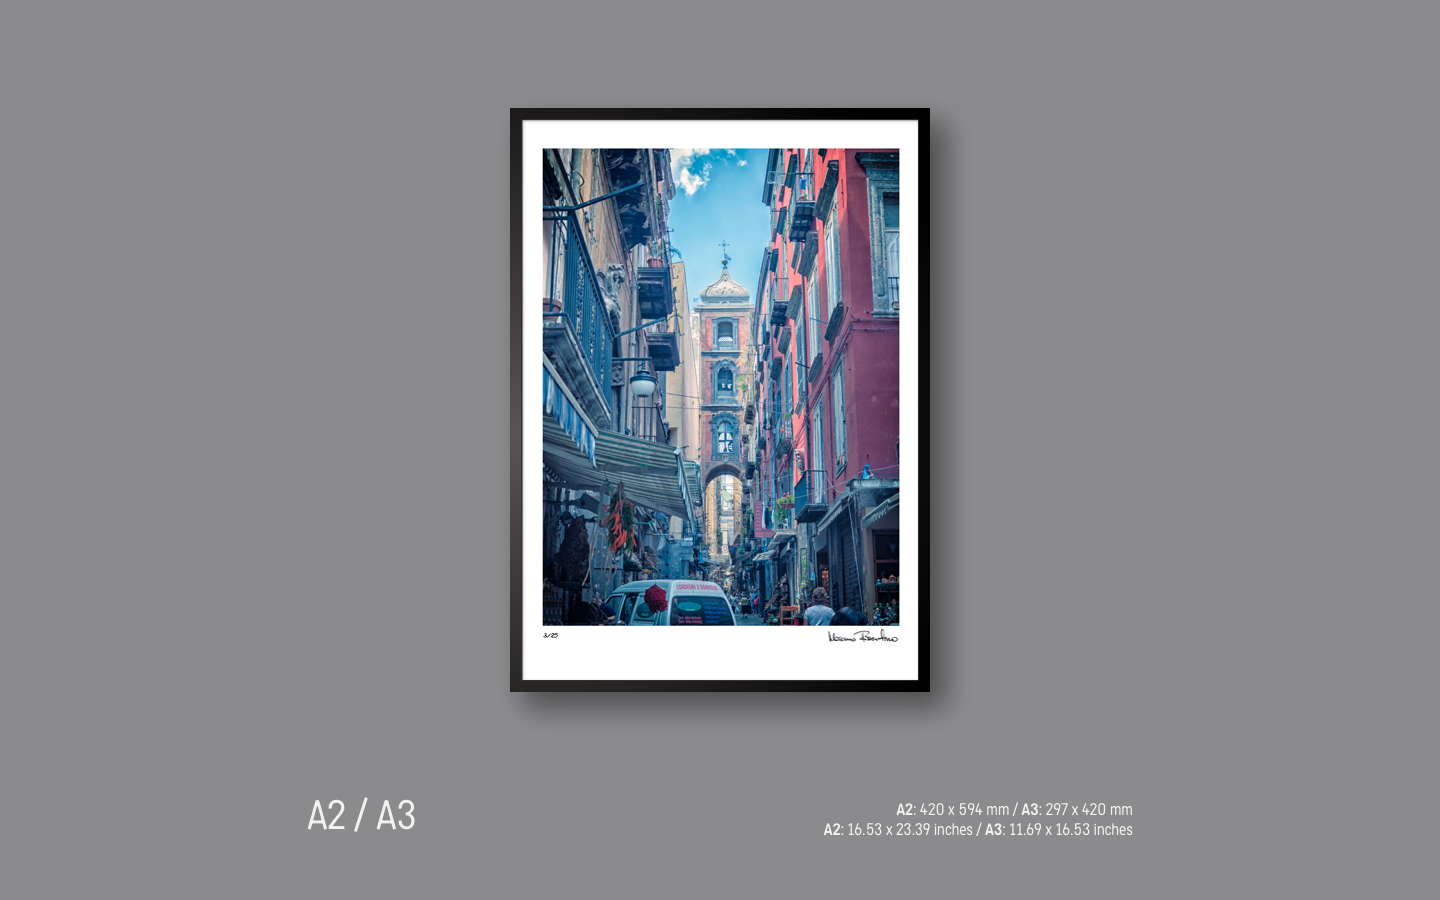 Image preview Standalone A2.png